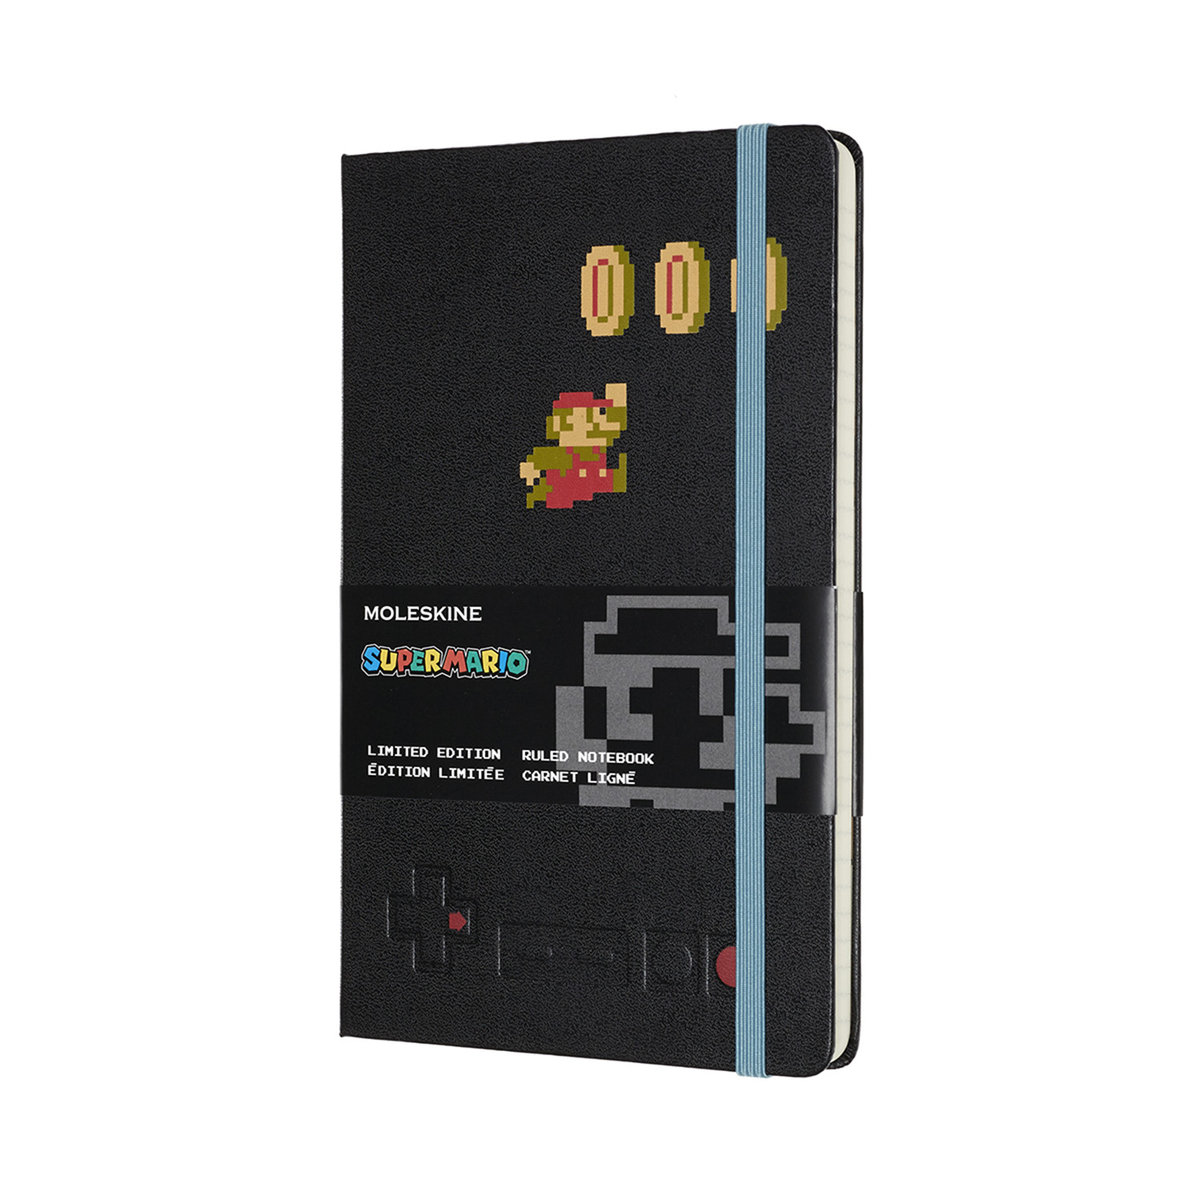 Moleskine Limited Edition Notebook Super Mario Large Ruled MARIO IN MOTION